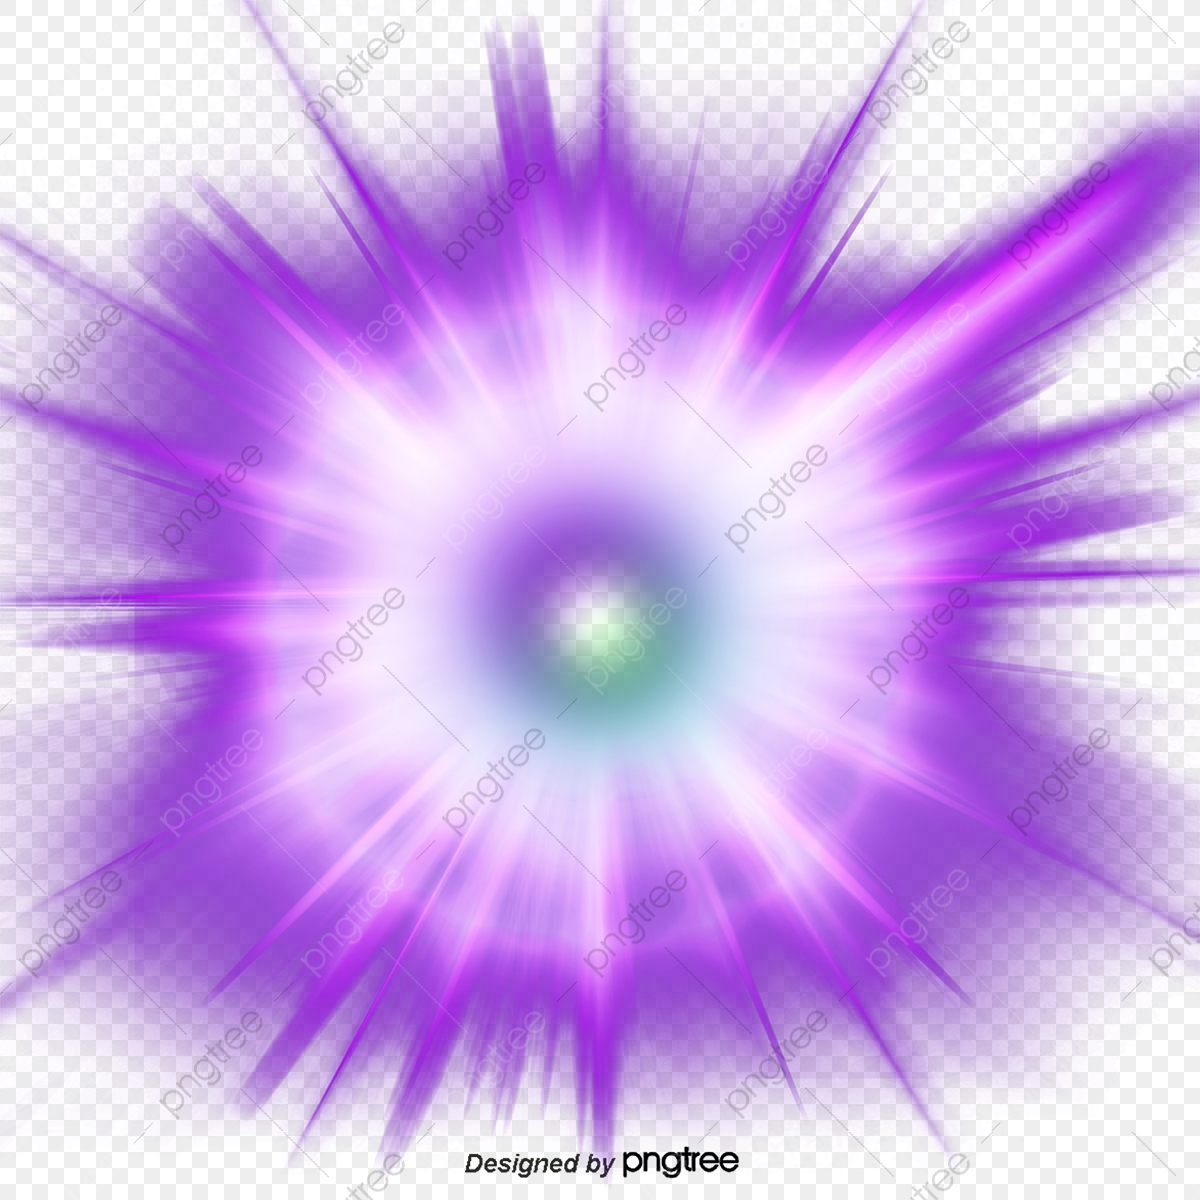 Fire png transparent image. Clipart explosion ice